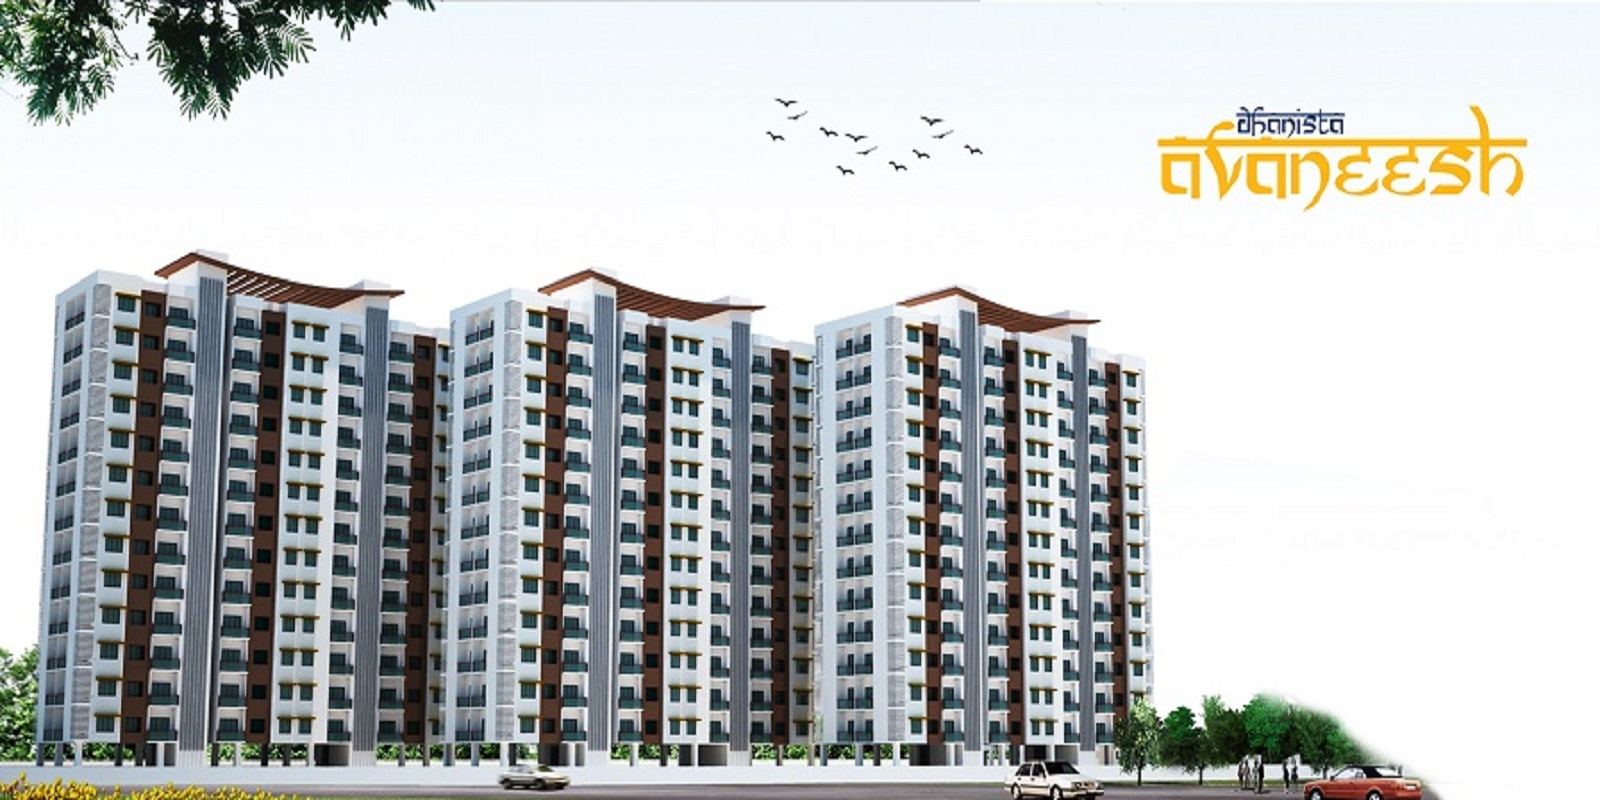 dhanista avaneesh project project large image1